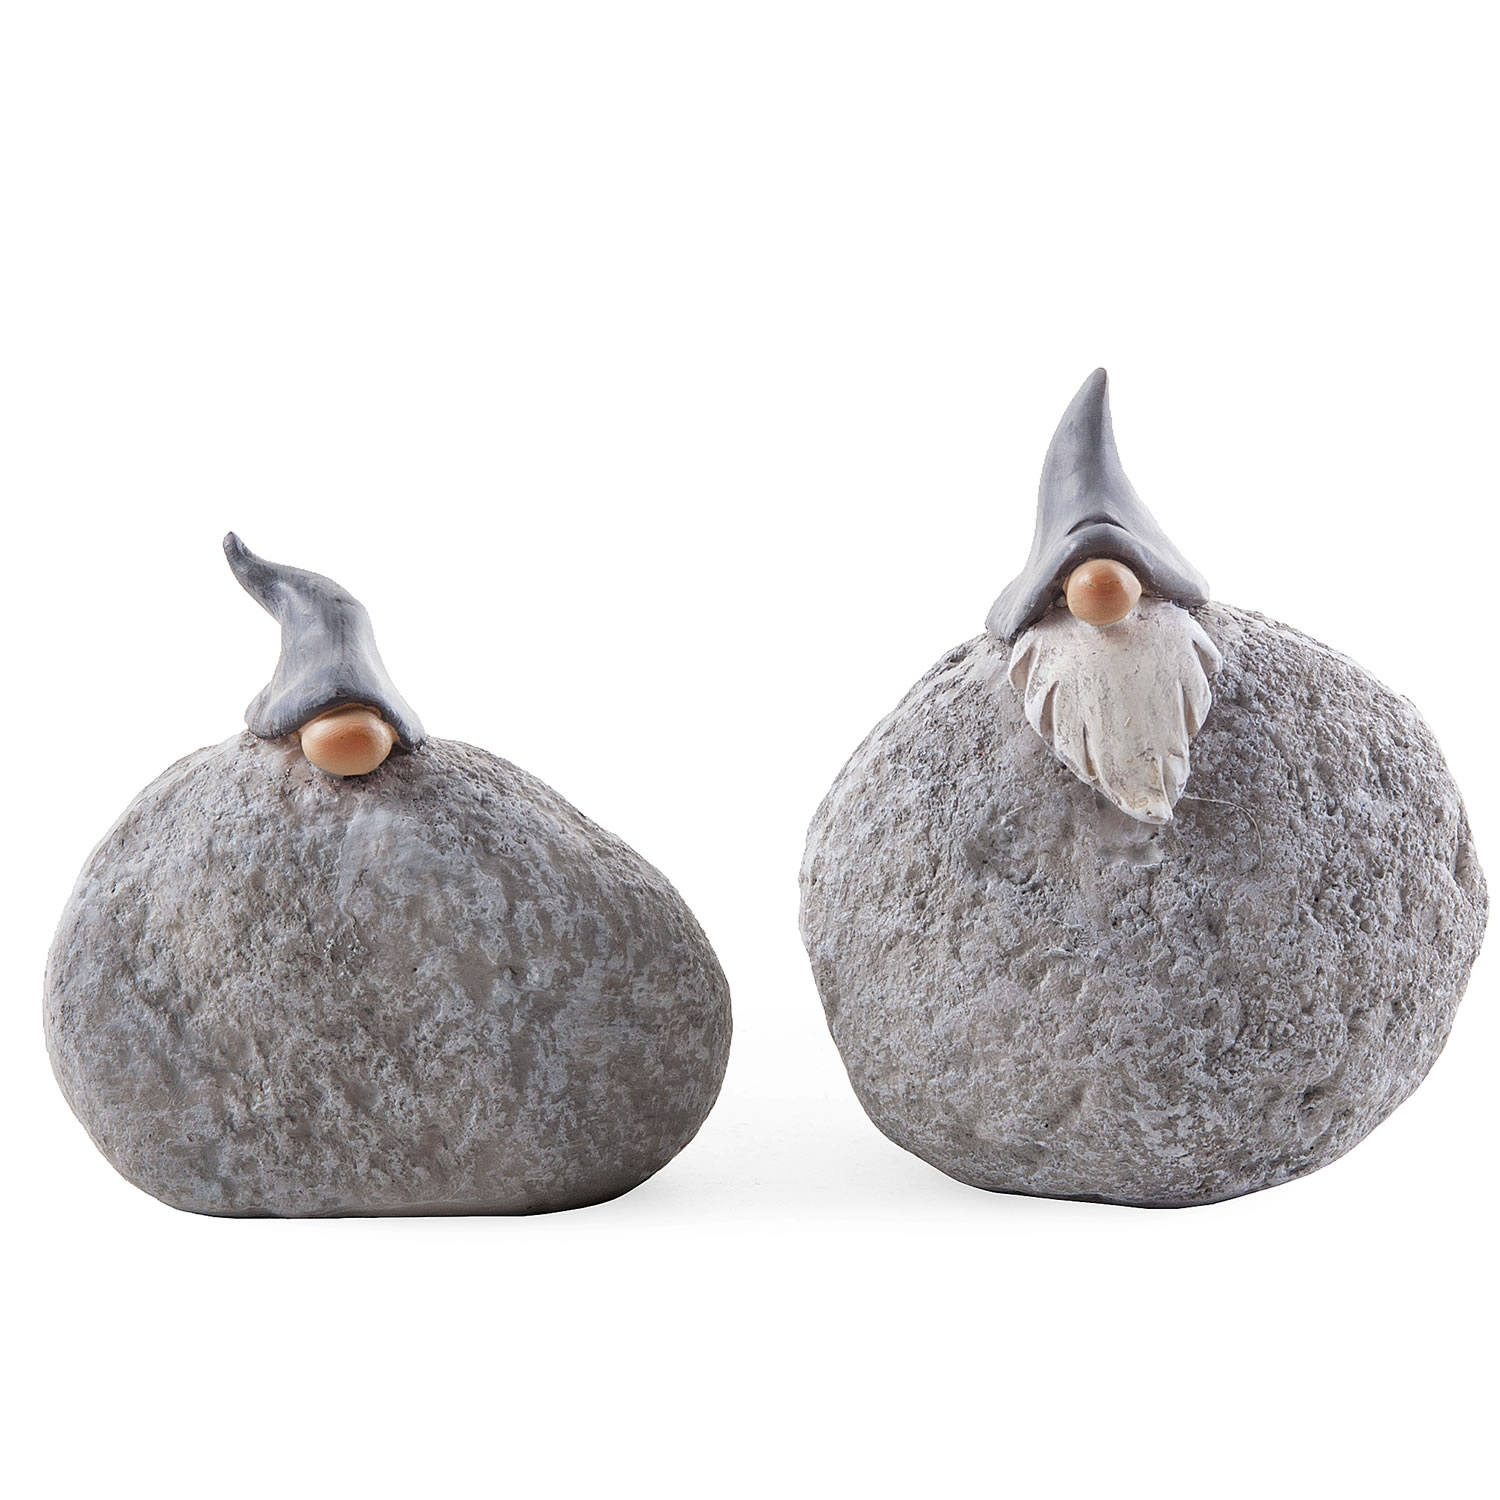 Set of two unusual rockery gnome garden ornaments for Quirky ornaments